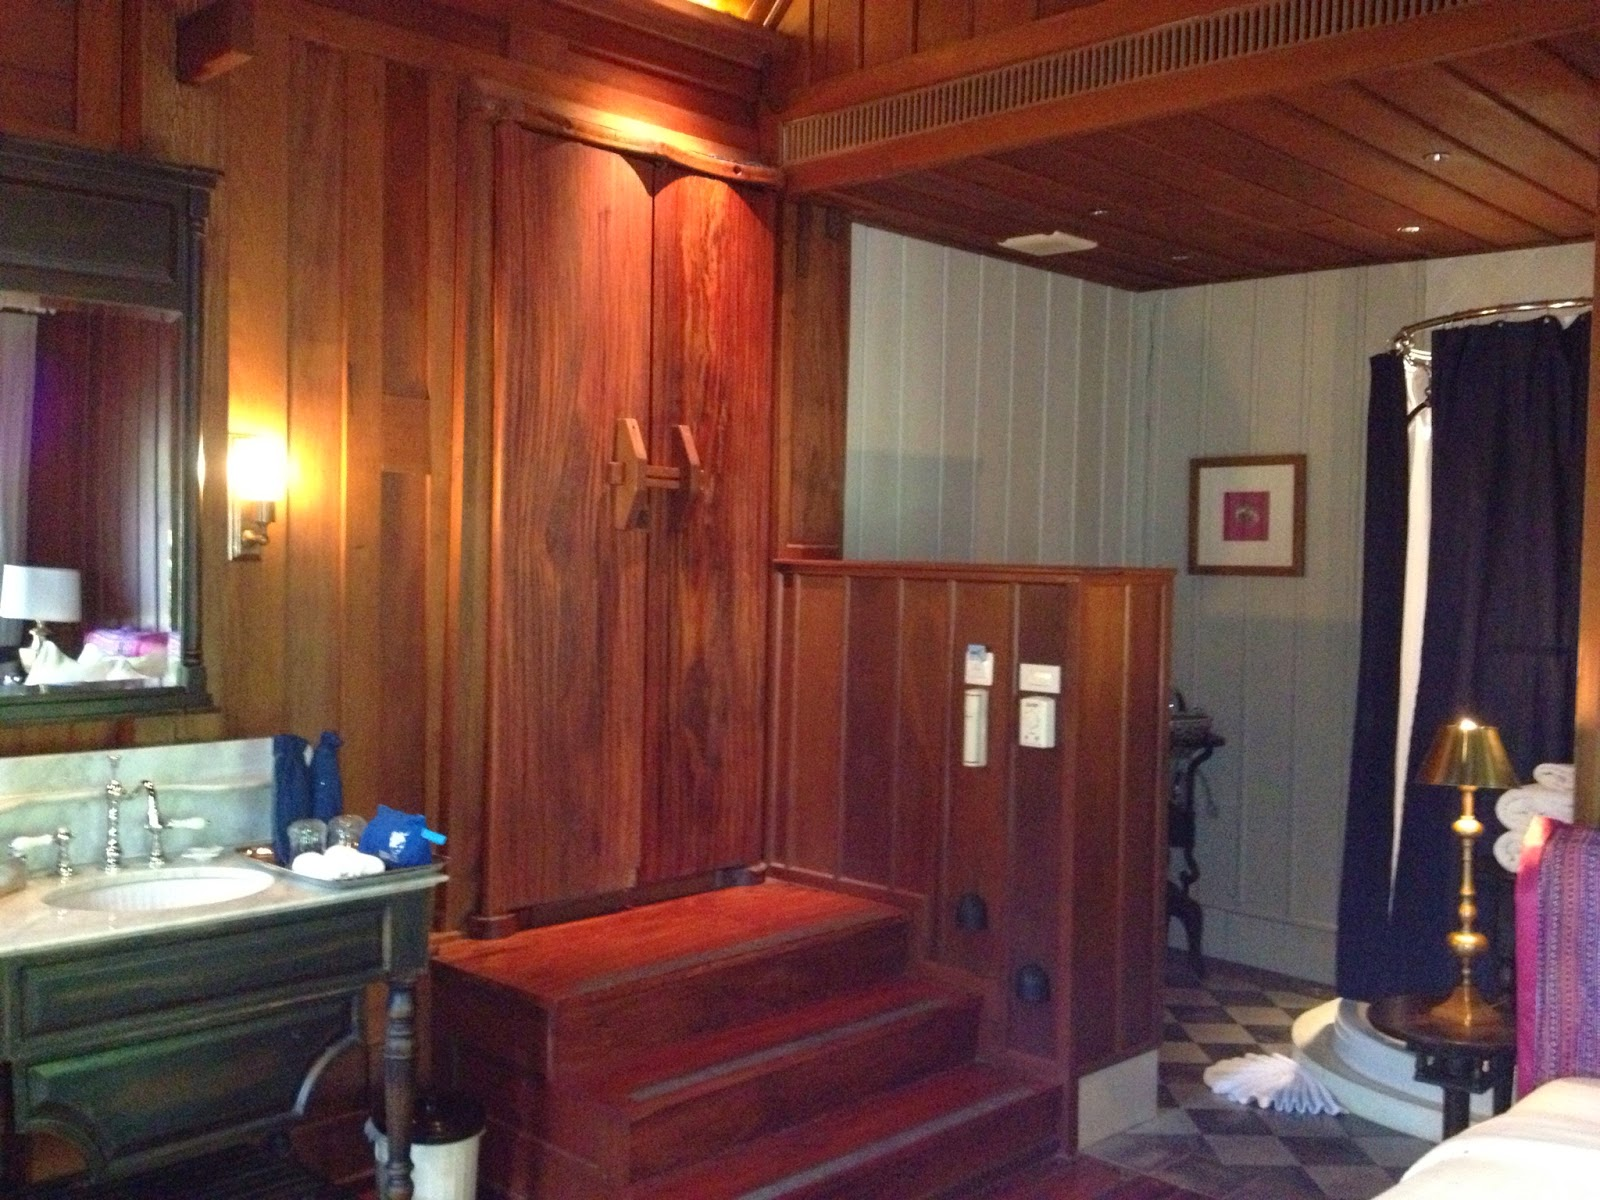 Luang Prabang - Our room at the Burasari Heritage with the open bathroom